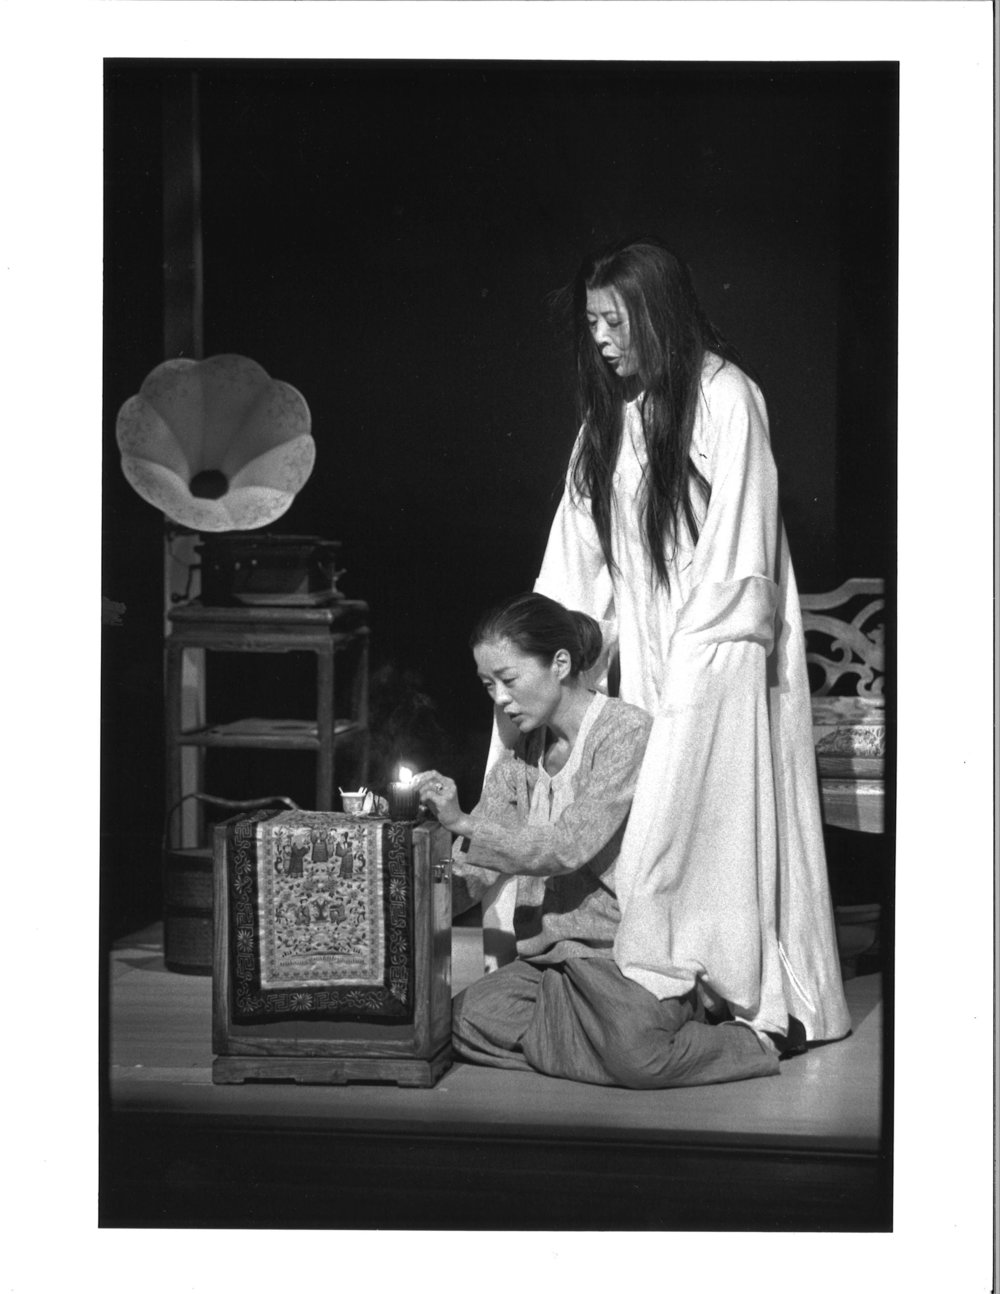 Lianna Pai and Tsai Chin Photo by Michal Daniels, from The Public Theater production in 1996.